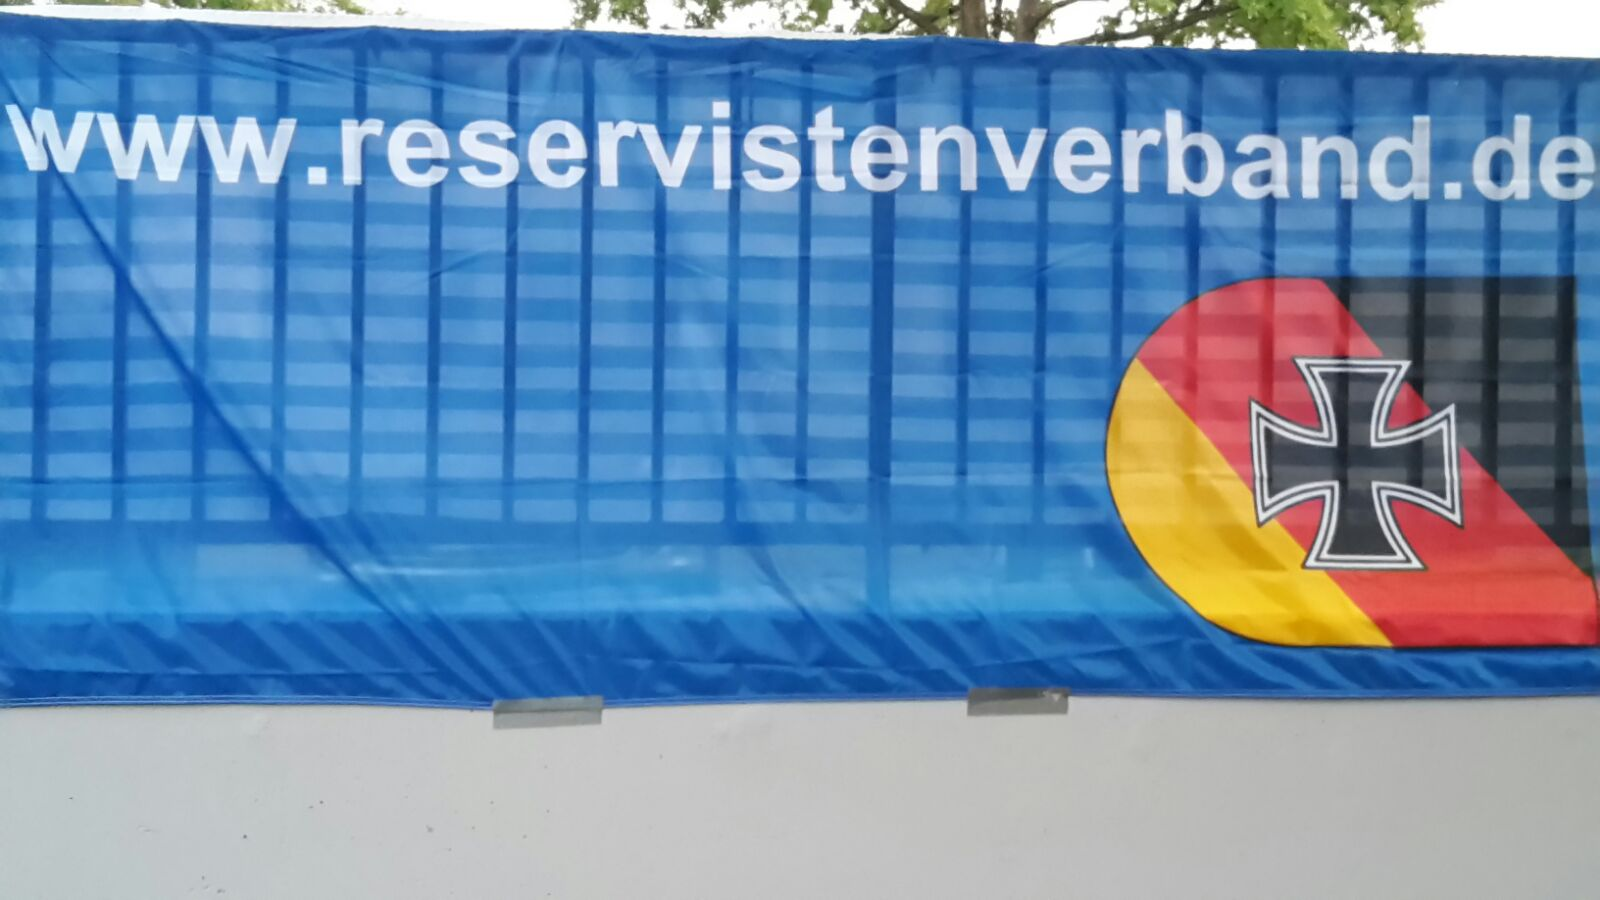 Unsere Verbandsflagge